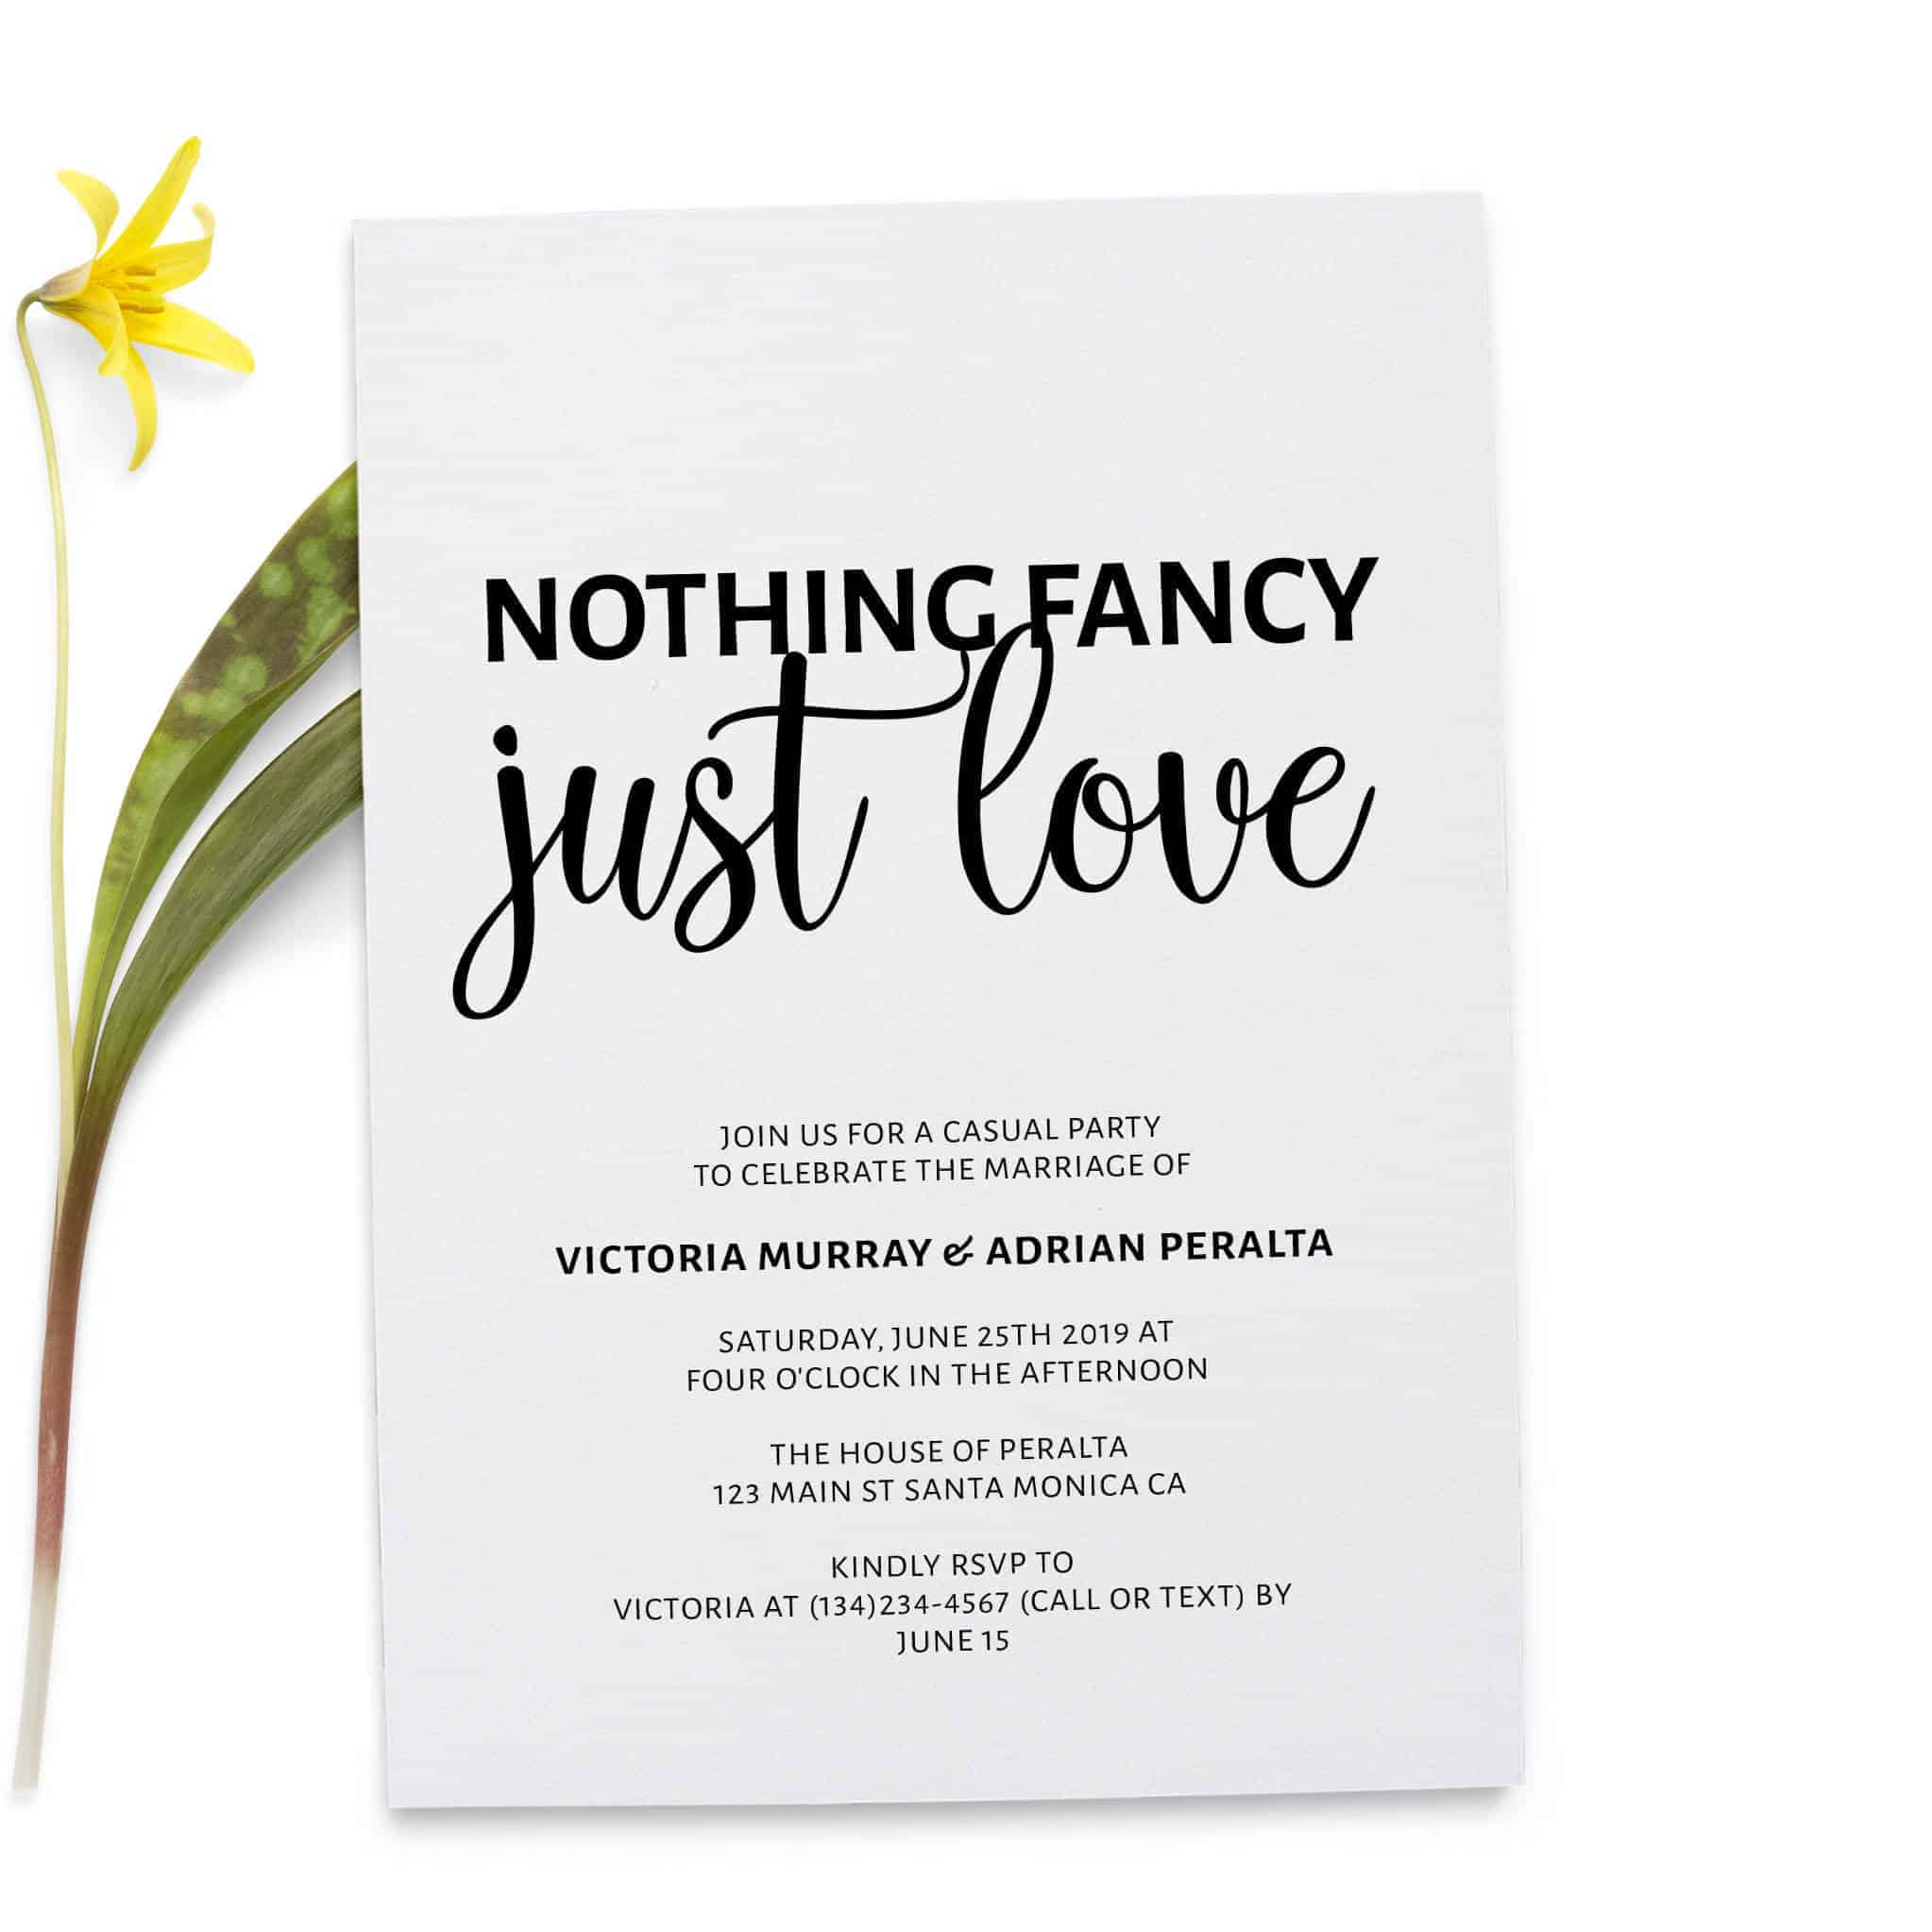 Nothing Fancy Just Love, Simple Elopement Invitation Cards, Light Wedding Elopement Card, Marriage Announcement Cards elopement244